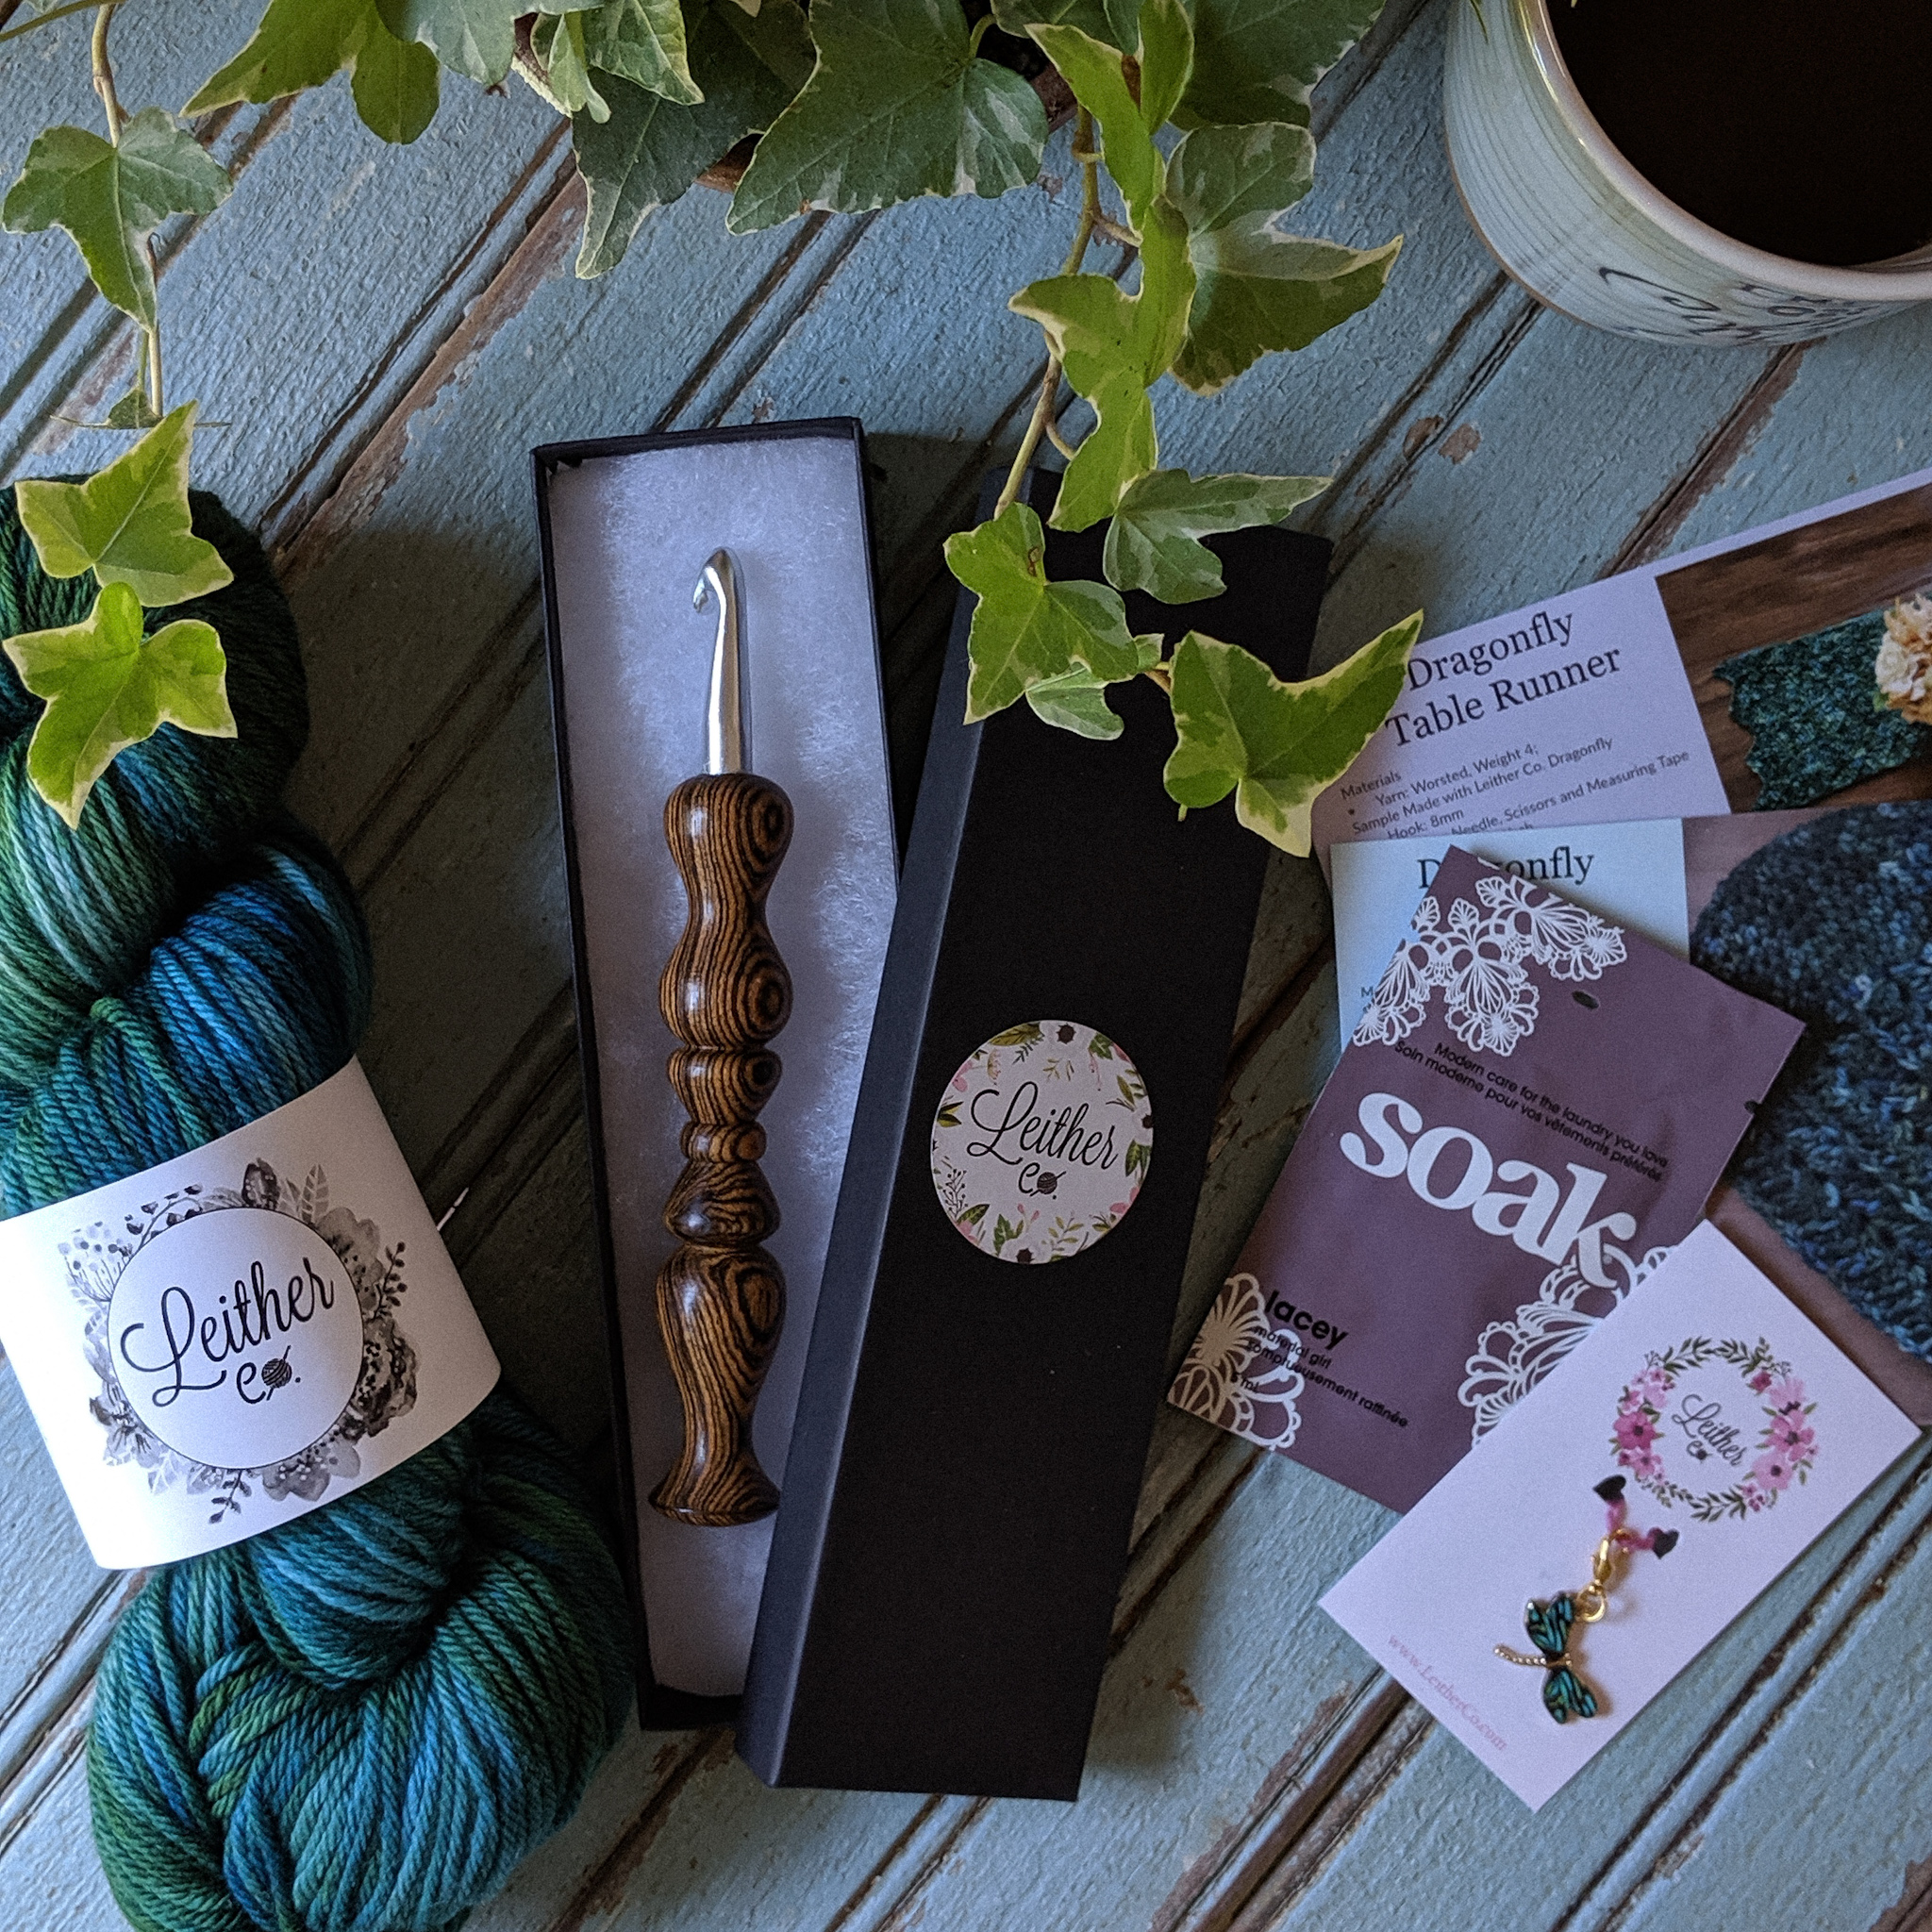 Leither Co. Subscription Box Review: #crochet #crochetbox #crochetsubscription